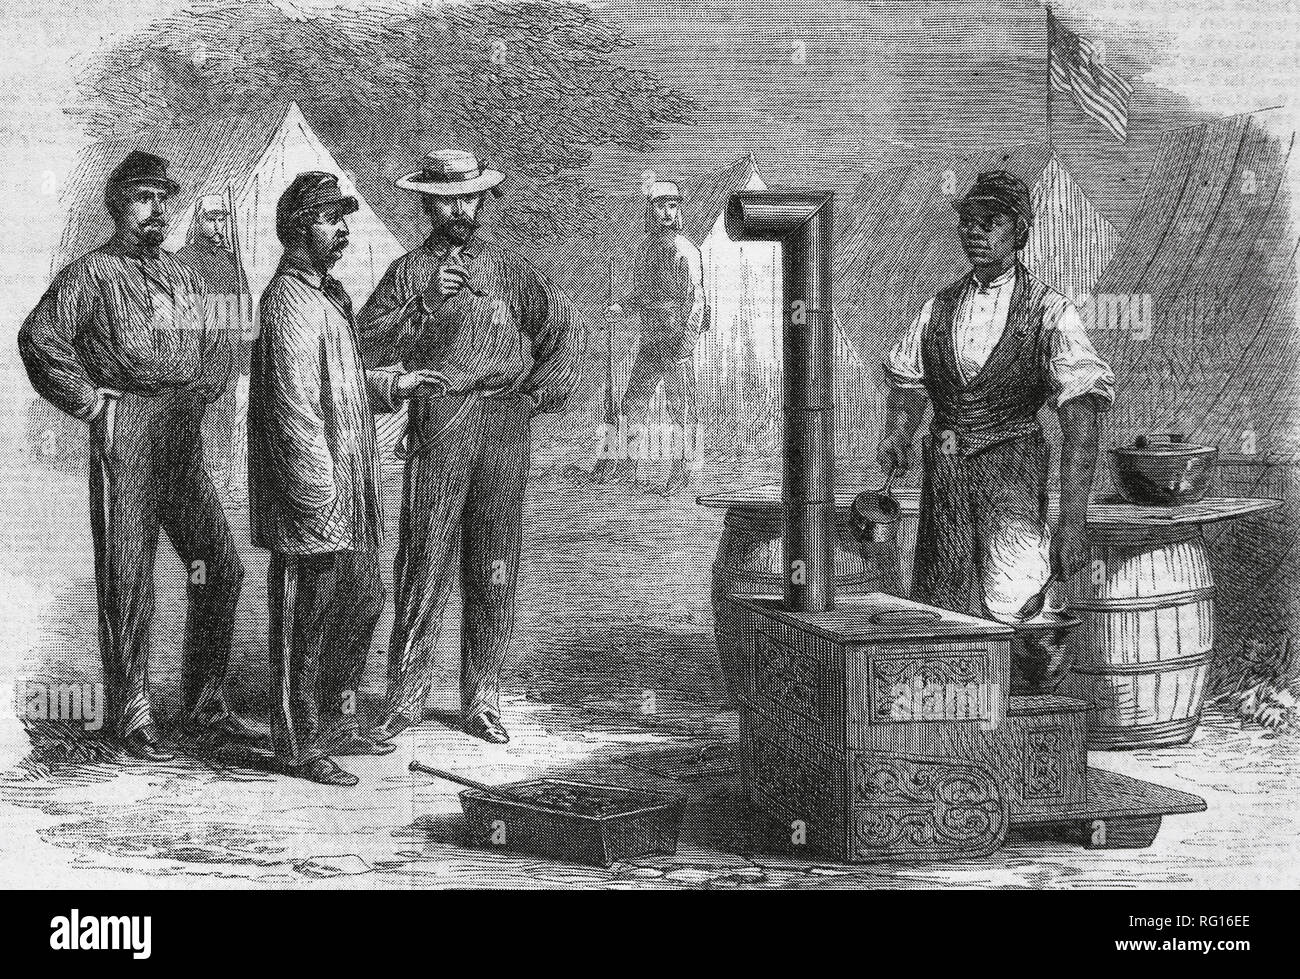 American Civil War. Union Army. The camp kitchen of the 2nd New York Regiment. Engraving by Frank Vizetelly (1830-1883). - Stock Image